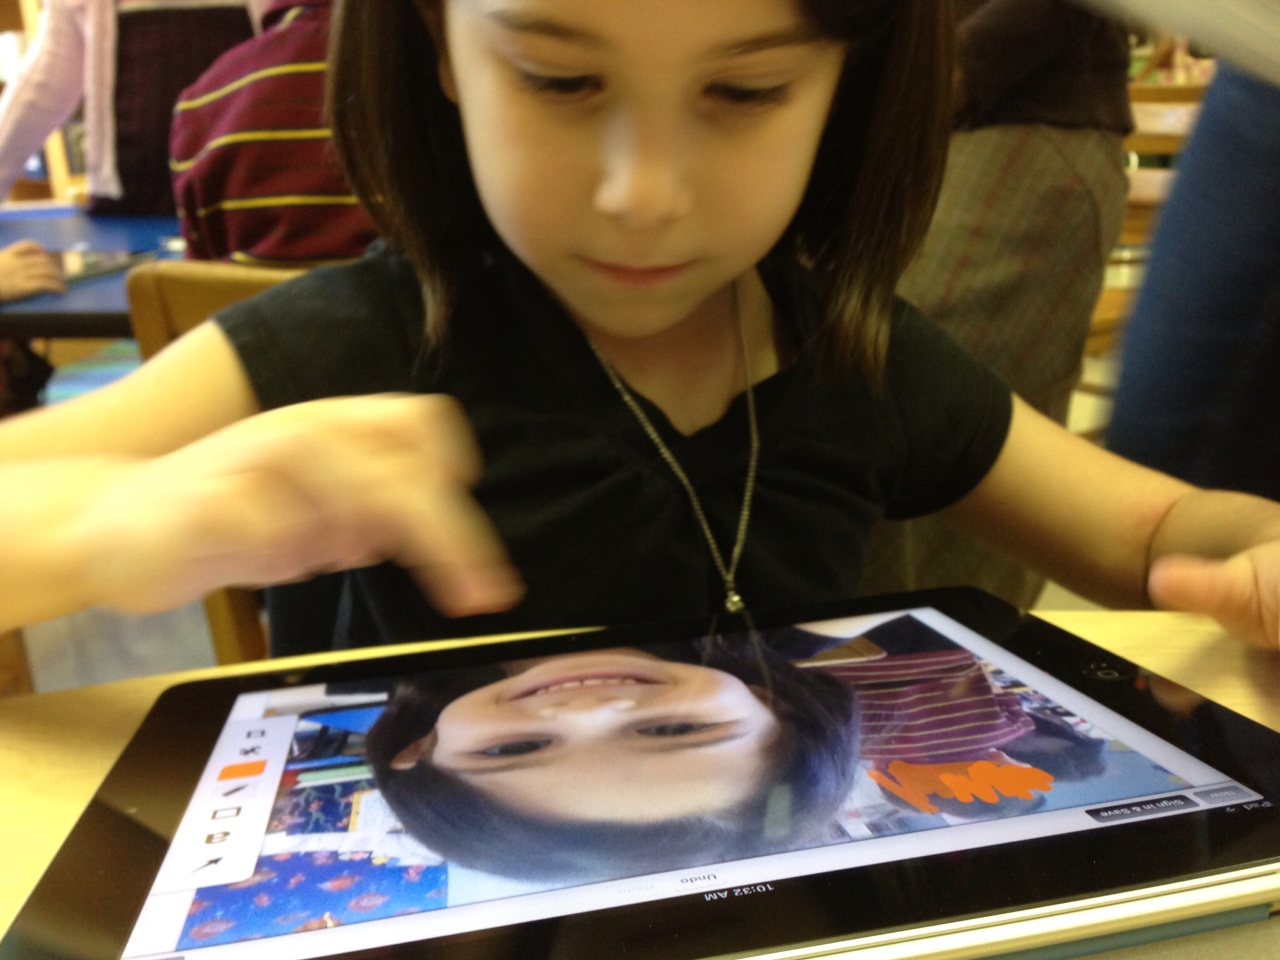 kids using the iPad